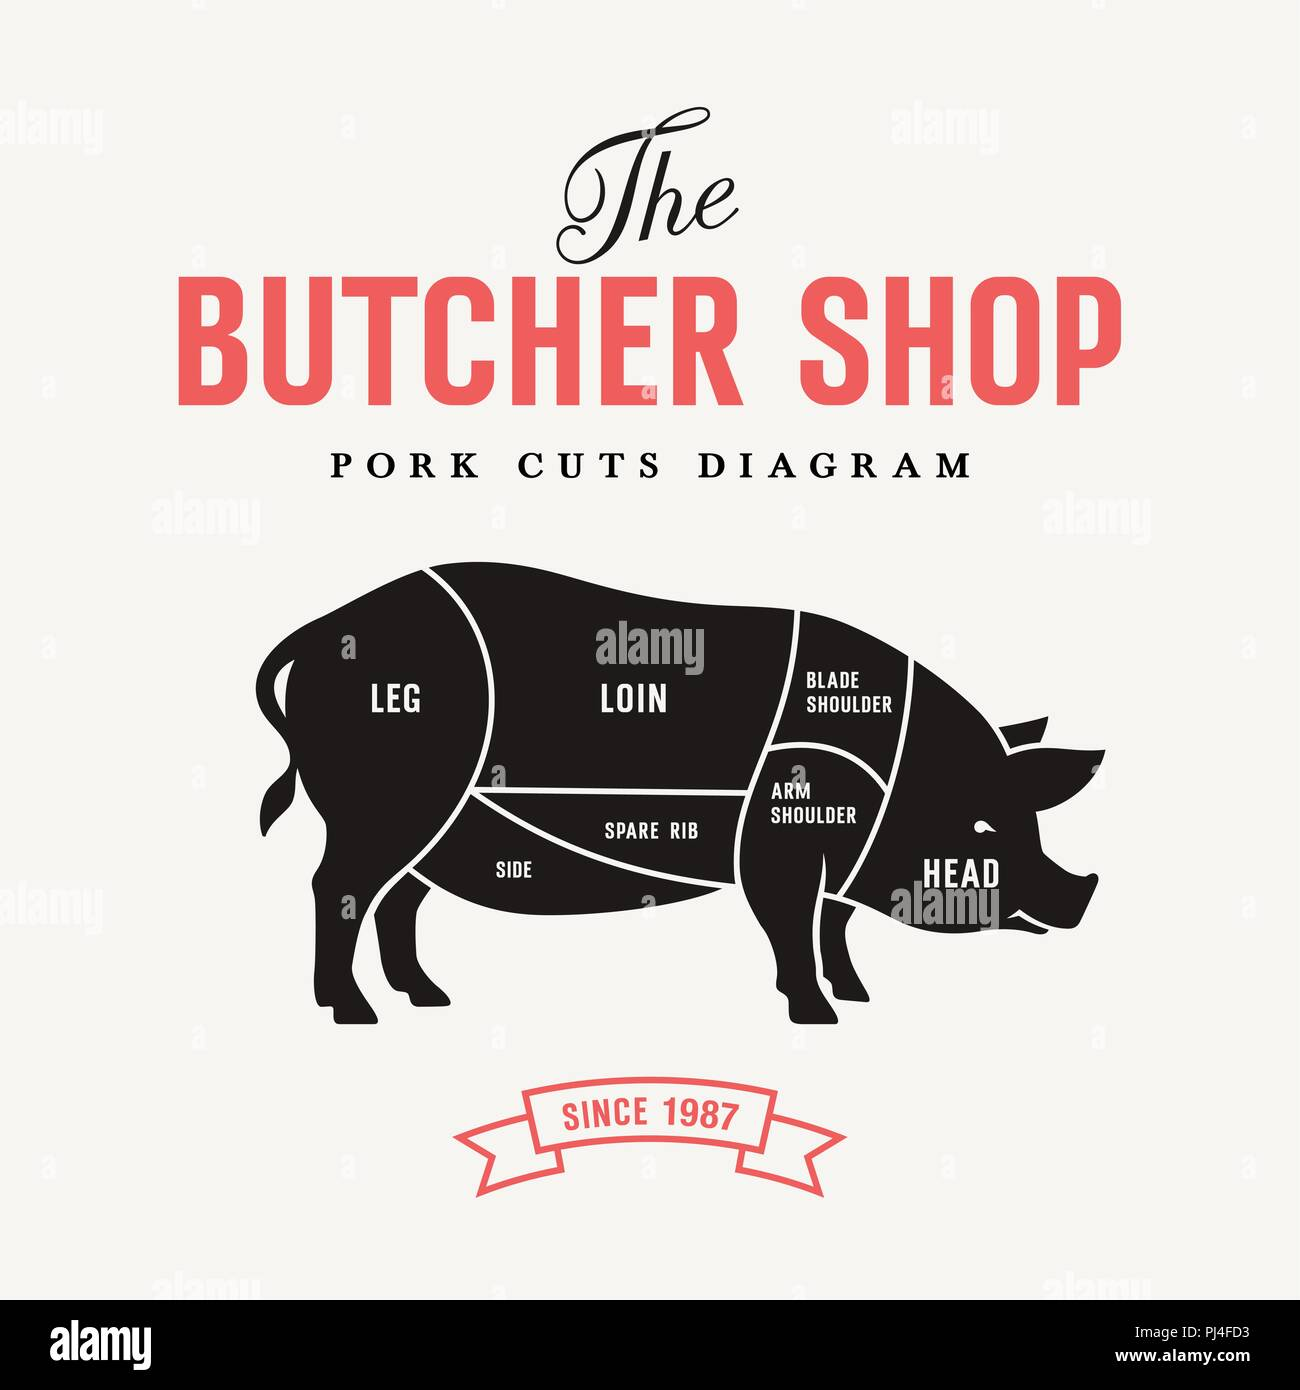 hight resolution of pork cuts diagram vector illustration for butcher shop and farm market